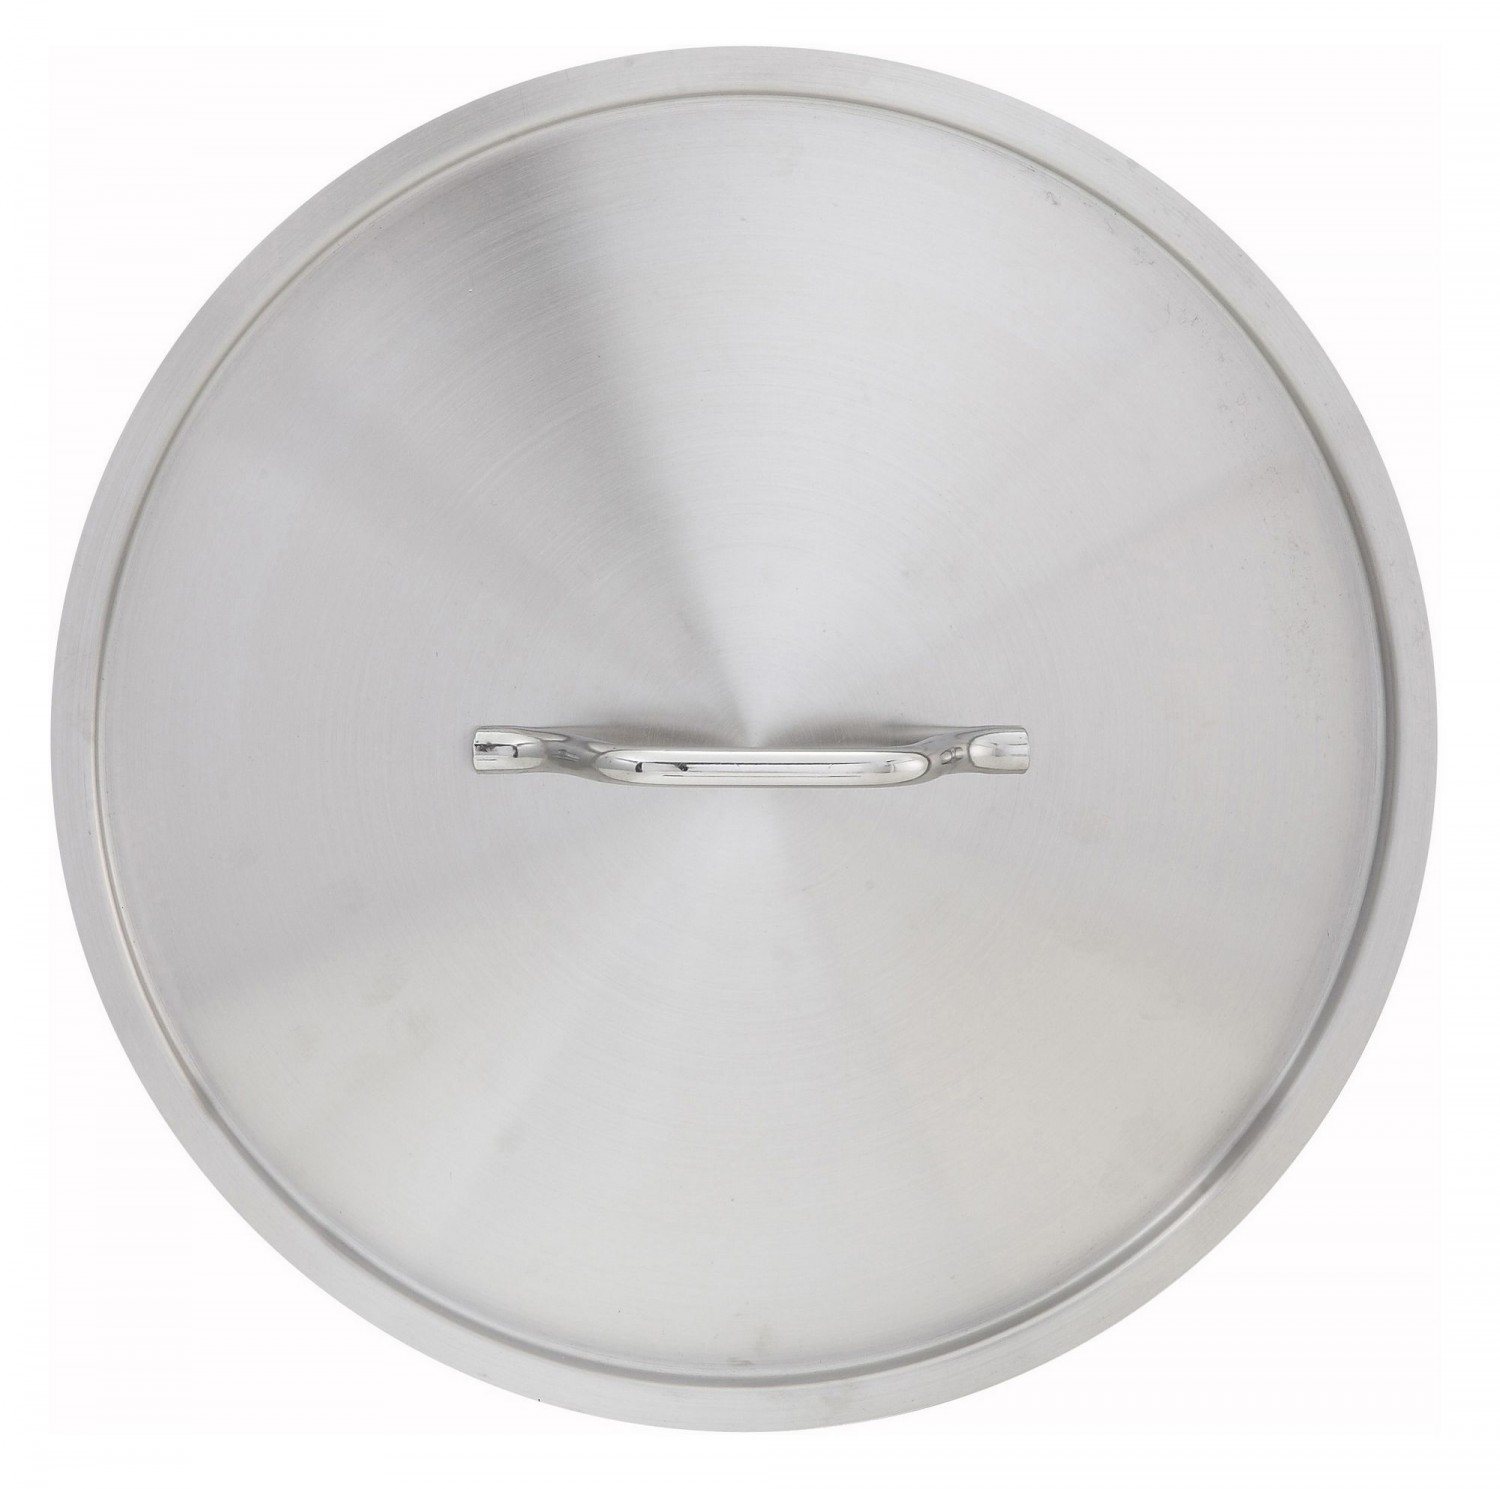 Winco SSTC-20 Stainless Steel Cover for SST-20, SSDB-20/20S